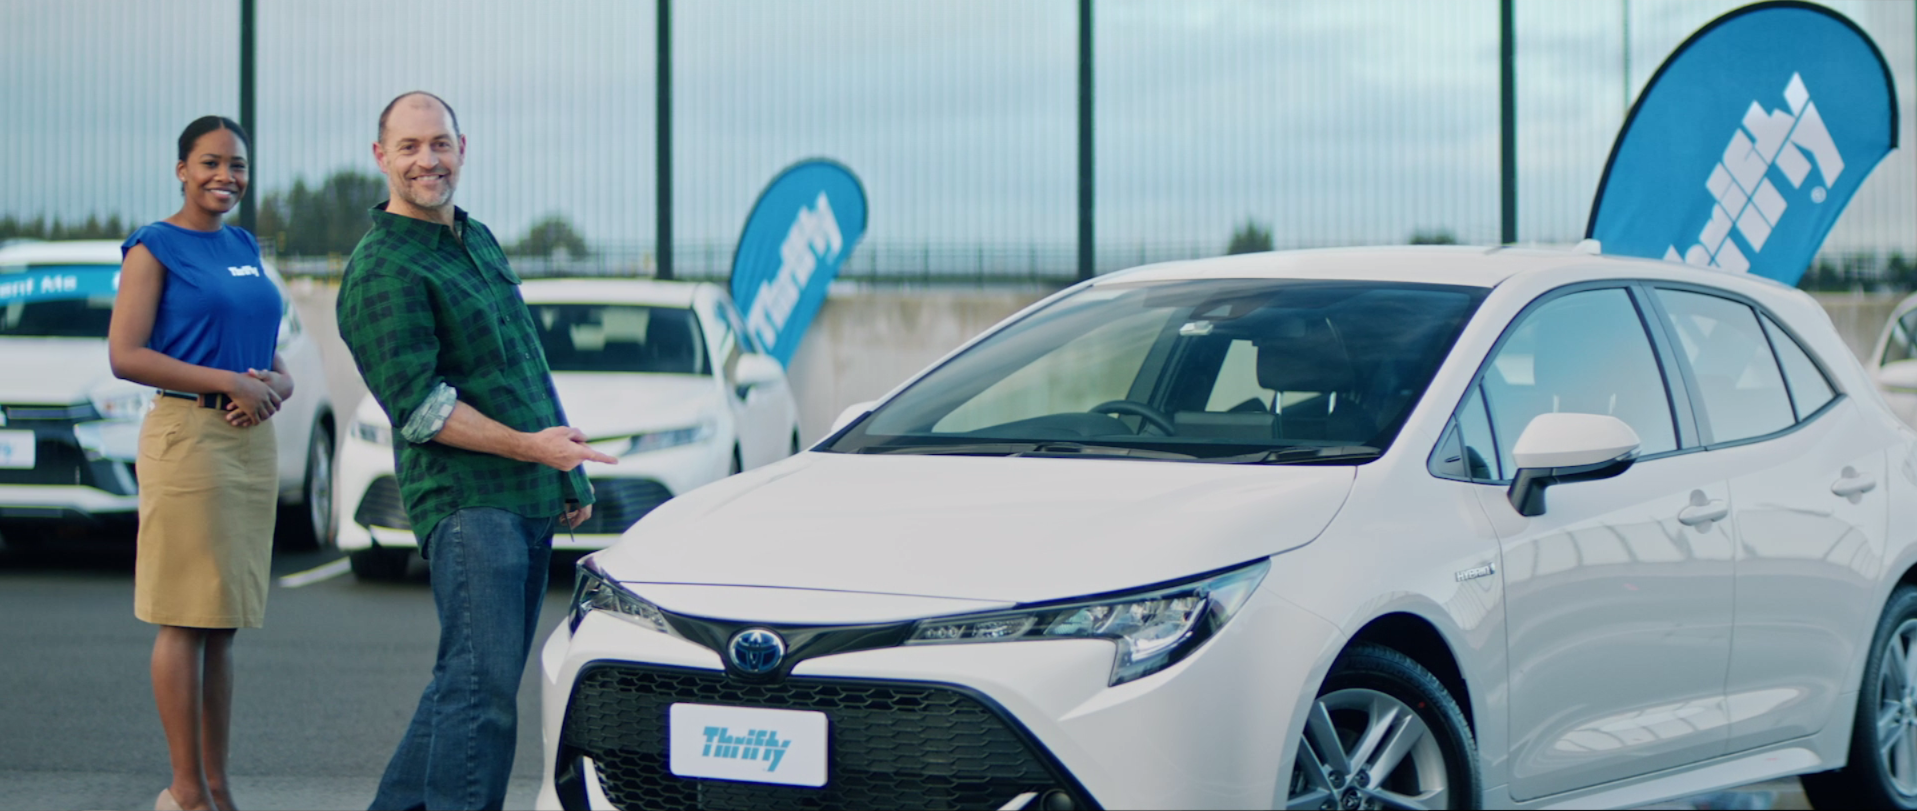 Thrifty Finds The Perfect Vehicle In Latest 'Decisions' Campaign Via Saatchi & Saatchi, Sydney